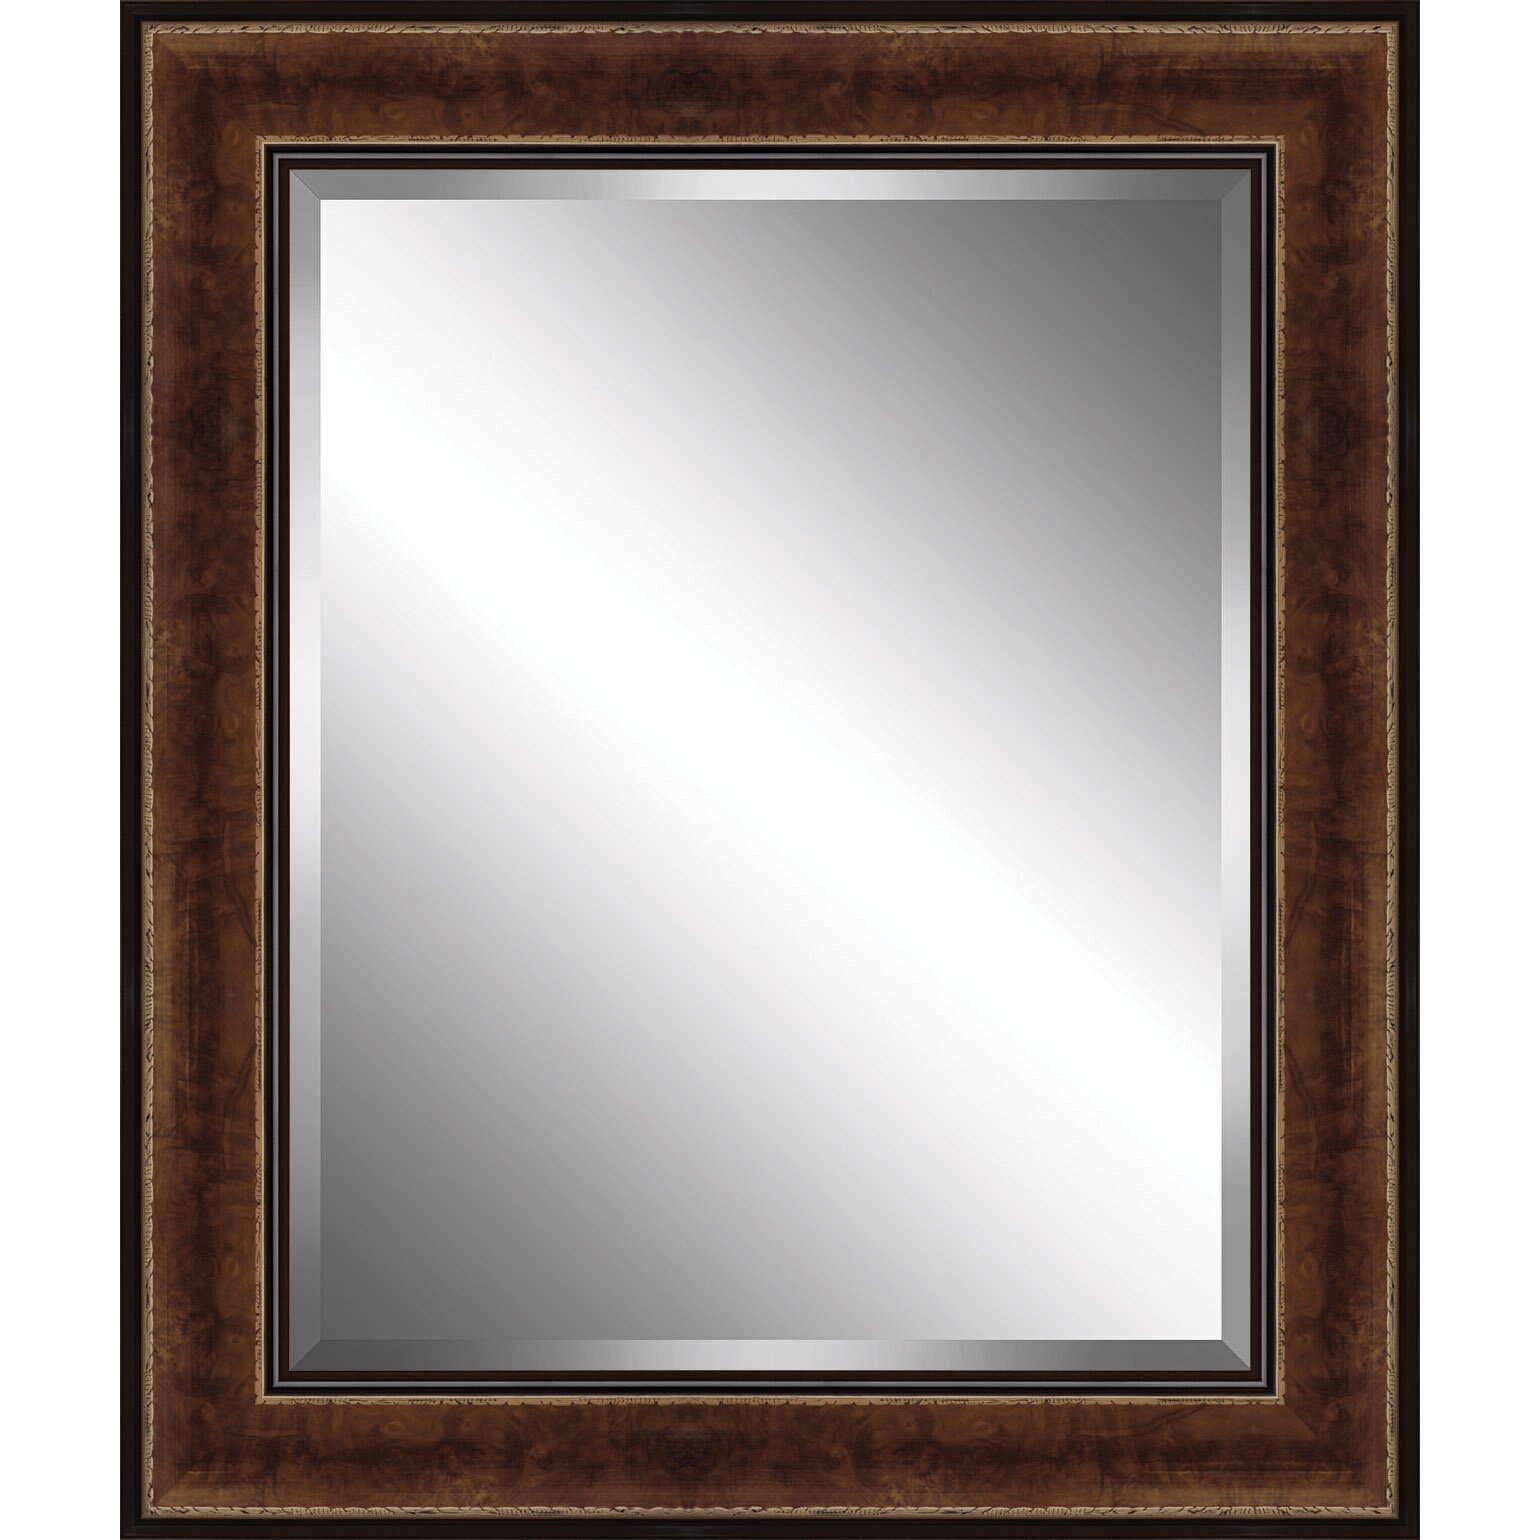 Wall Art In Mirror Frame : Ashton wall d?cor llc traditional wood framed beveled